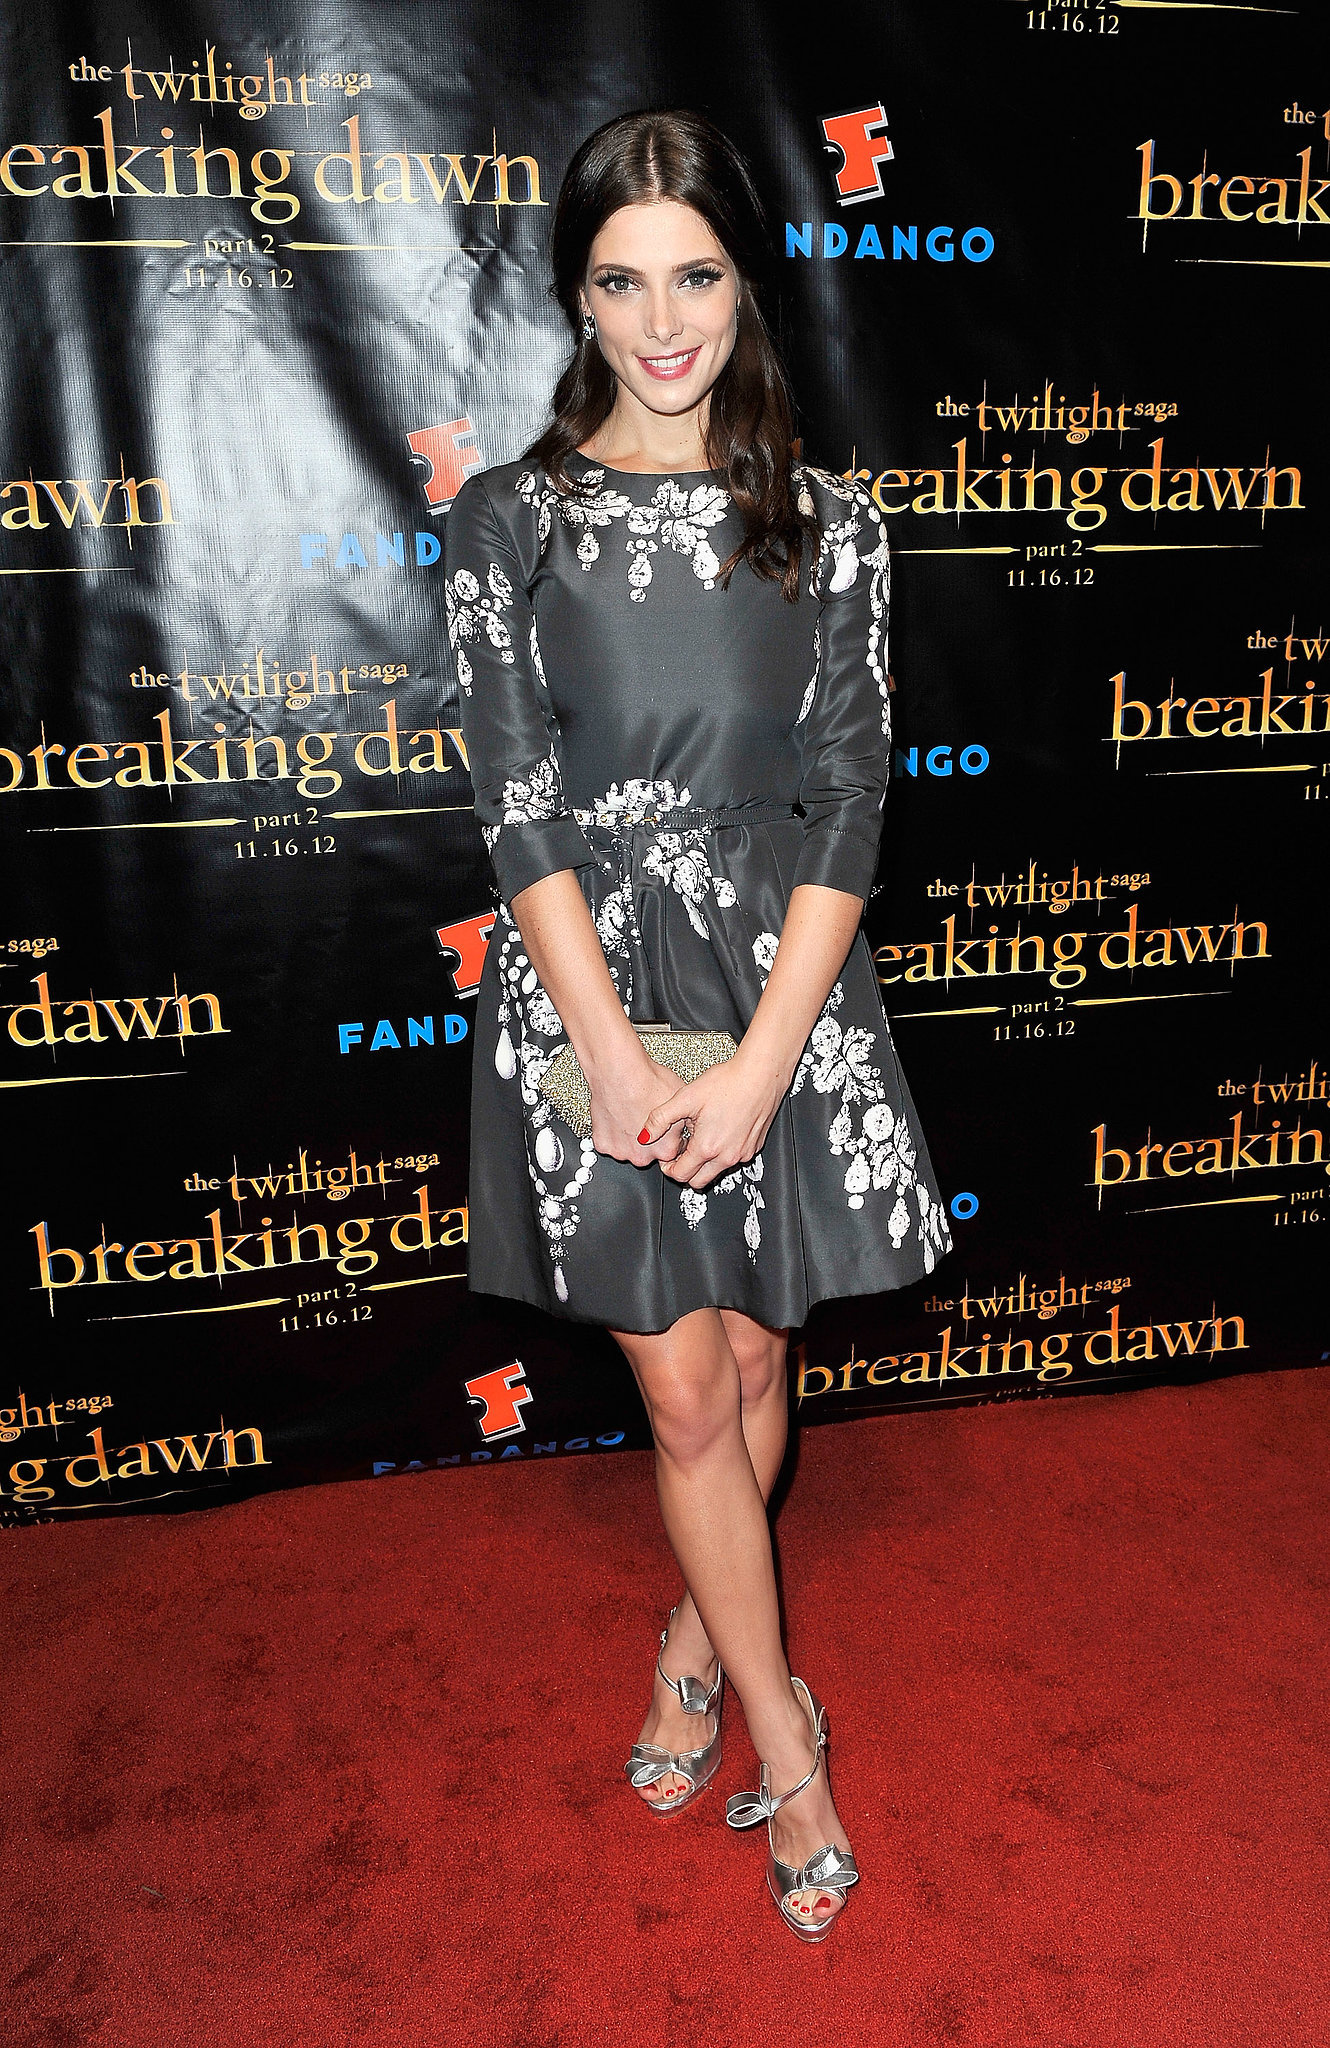 A blossoming Oscar de la Renta was Ashley's look of choice while promoting Breaking Dawn Part 2 at Comic-Con in San Diego.